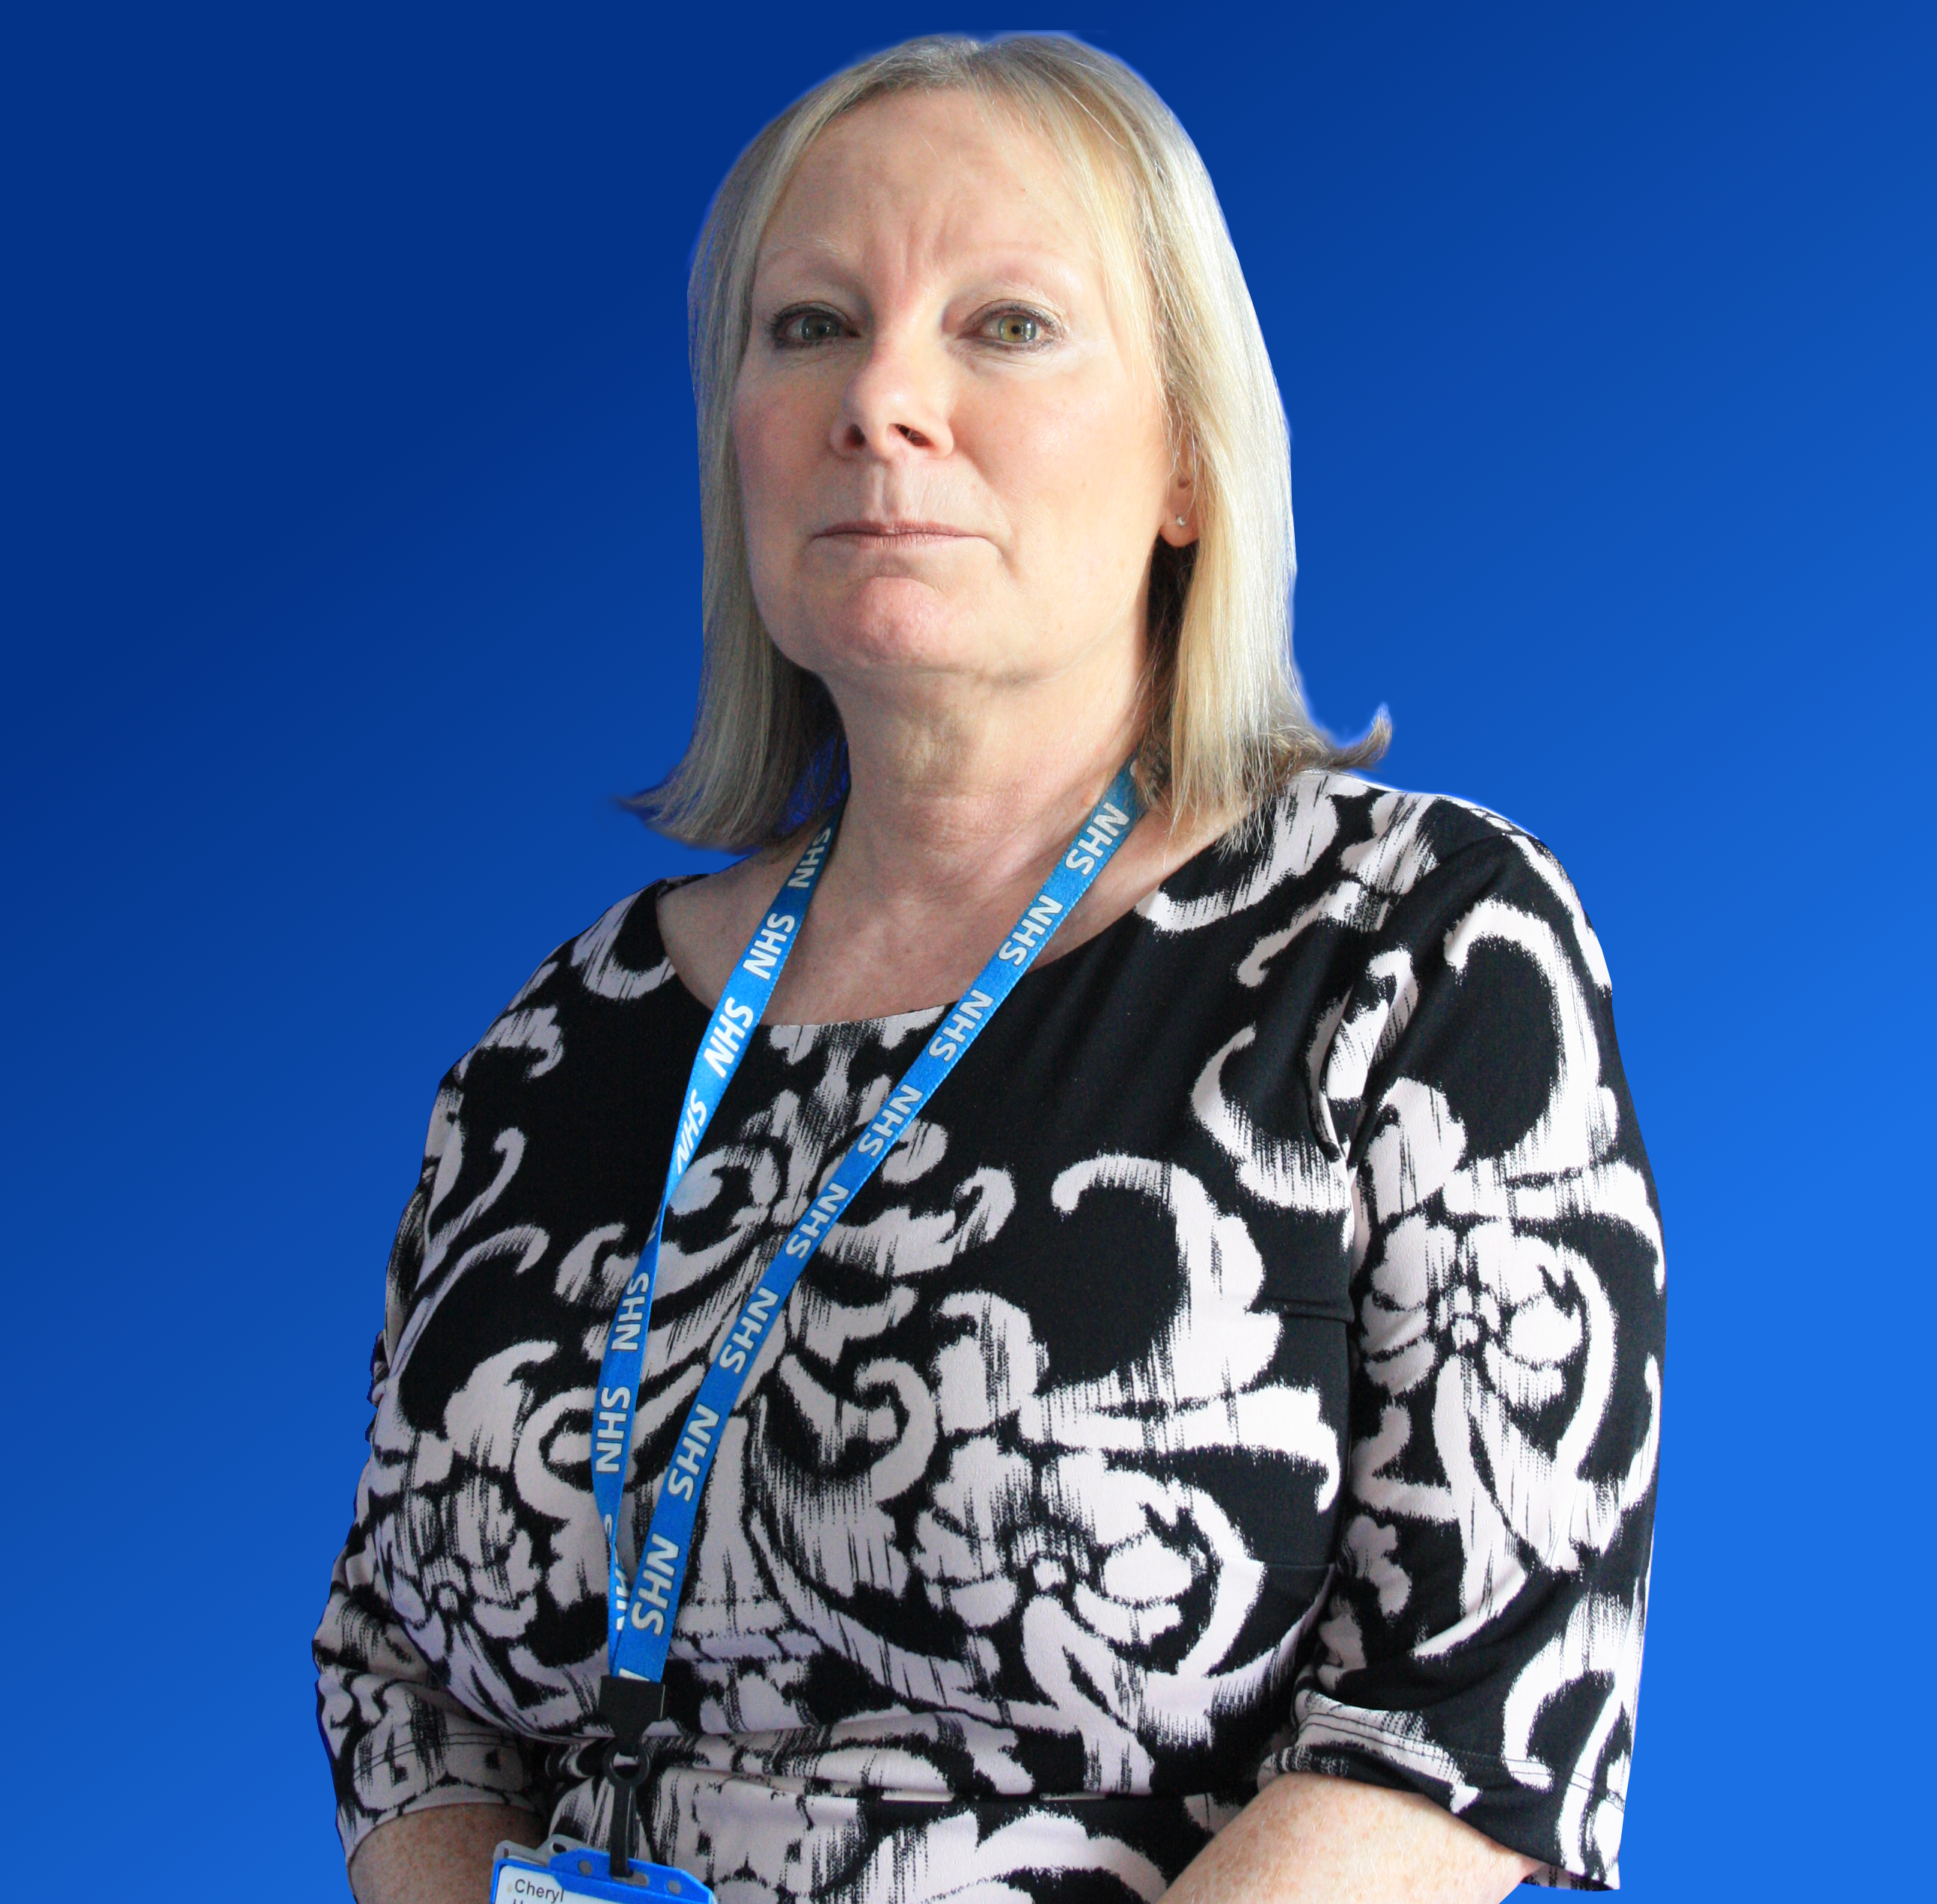 Cheryl Hardisty - Director of Commissioning and Operations